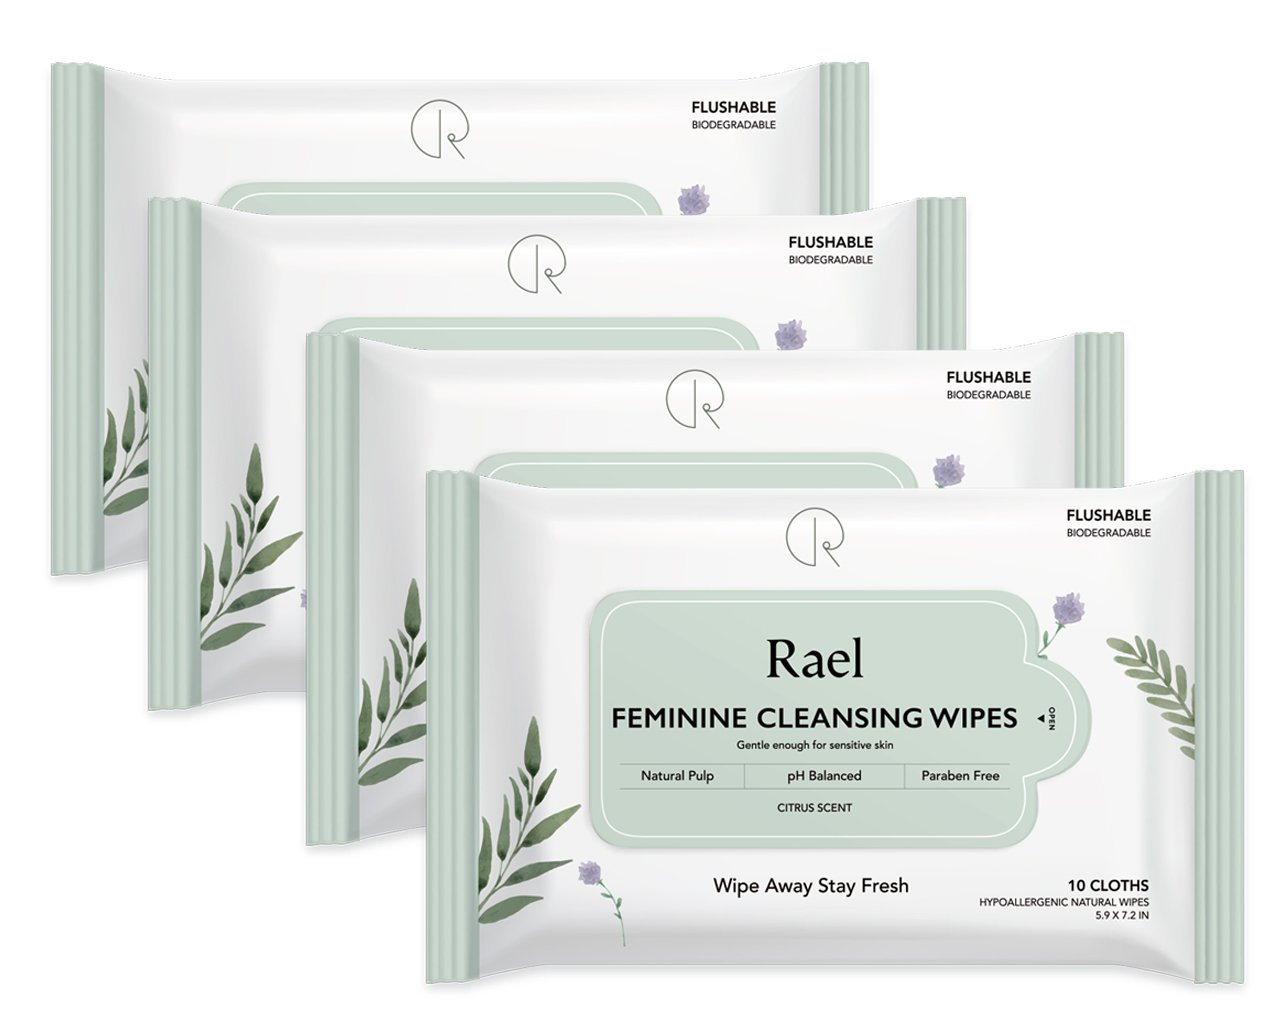 Rael Feminine Wipes with natural ingredients, use day or night, flushable, pH-balanced, gentle and safe on the skin. (4 Packs)